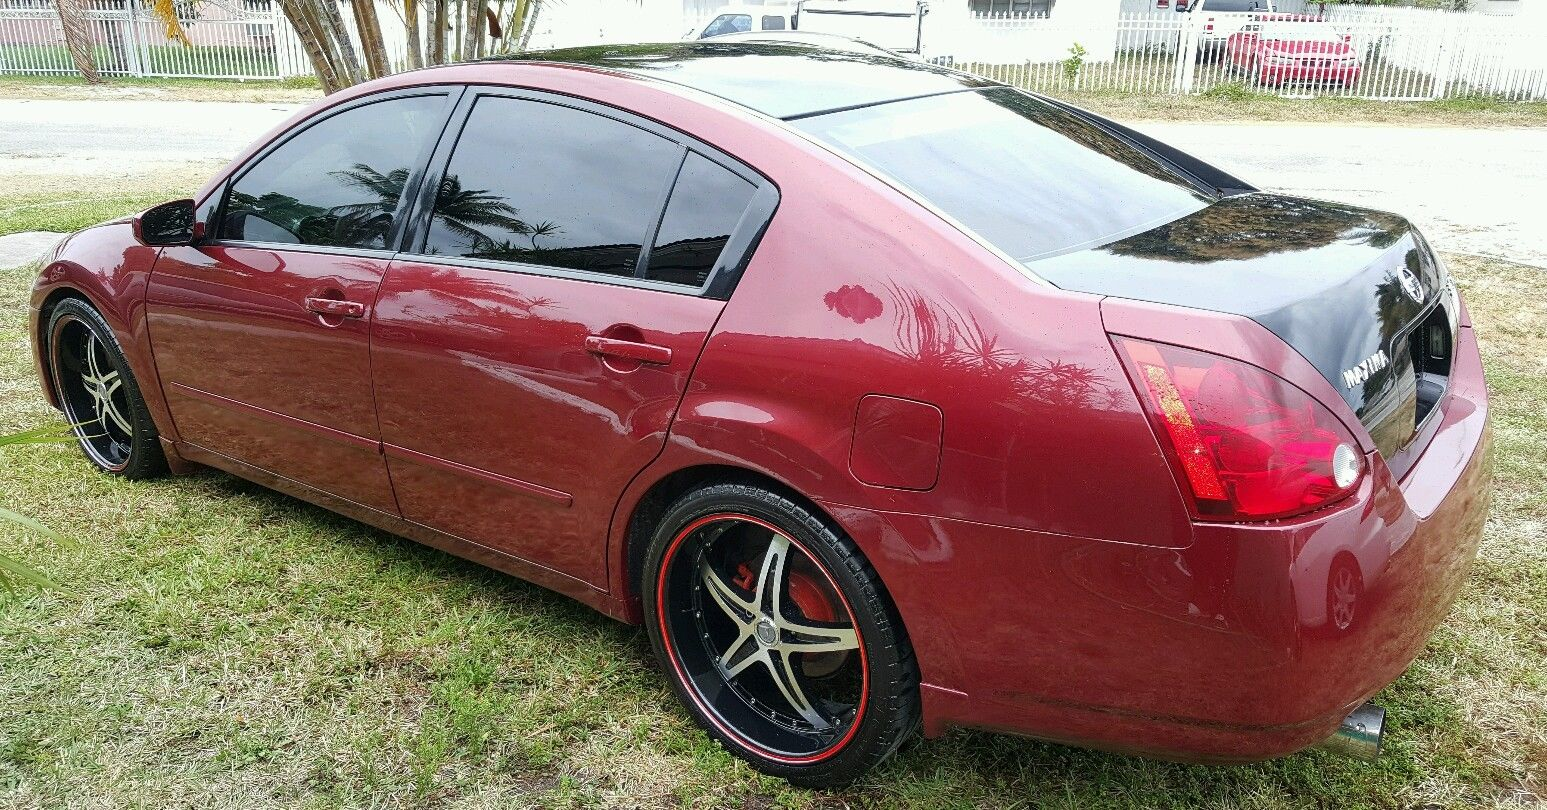 2004 Nissan Maxima Se Pinstripe Tuning For Sale